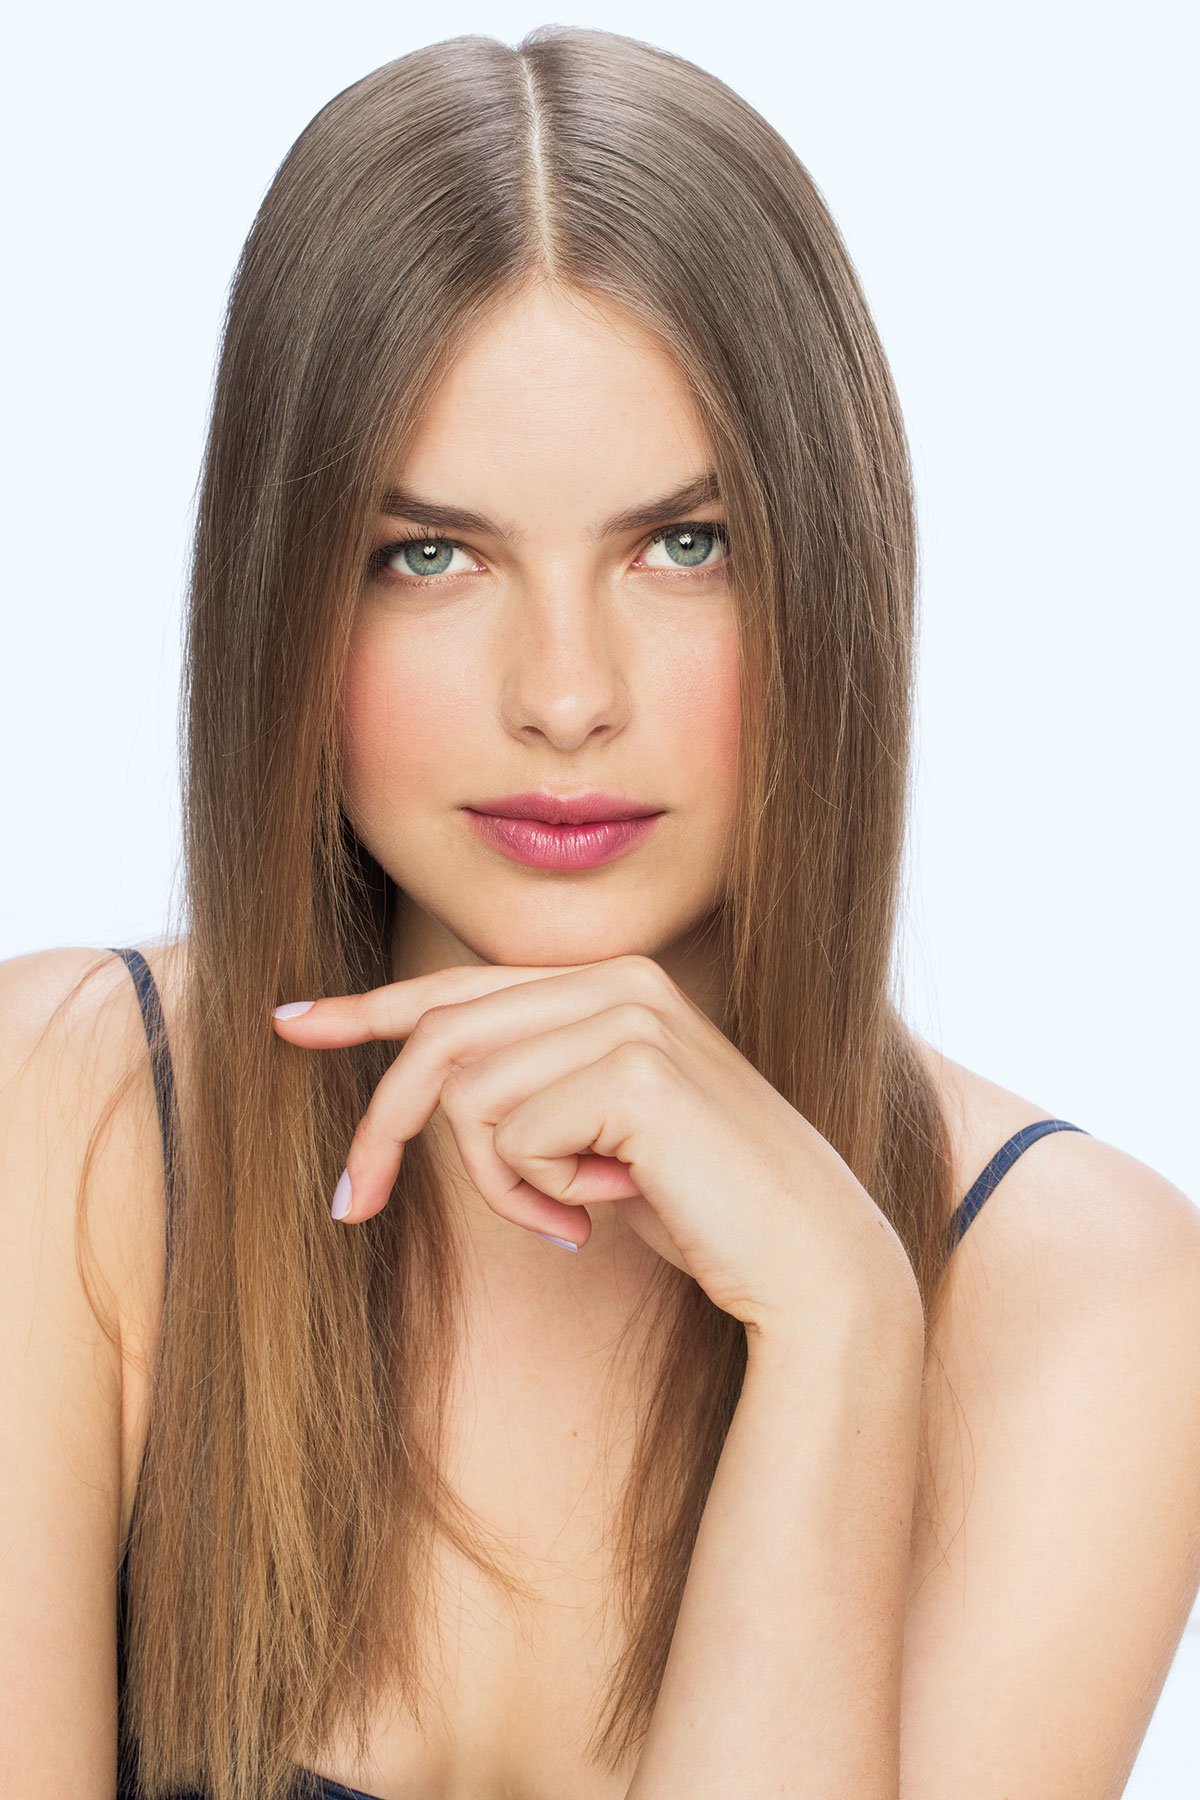 Model with middle part